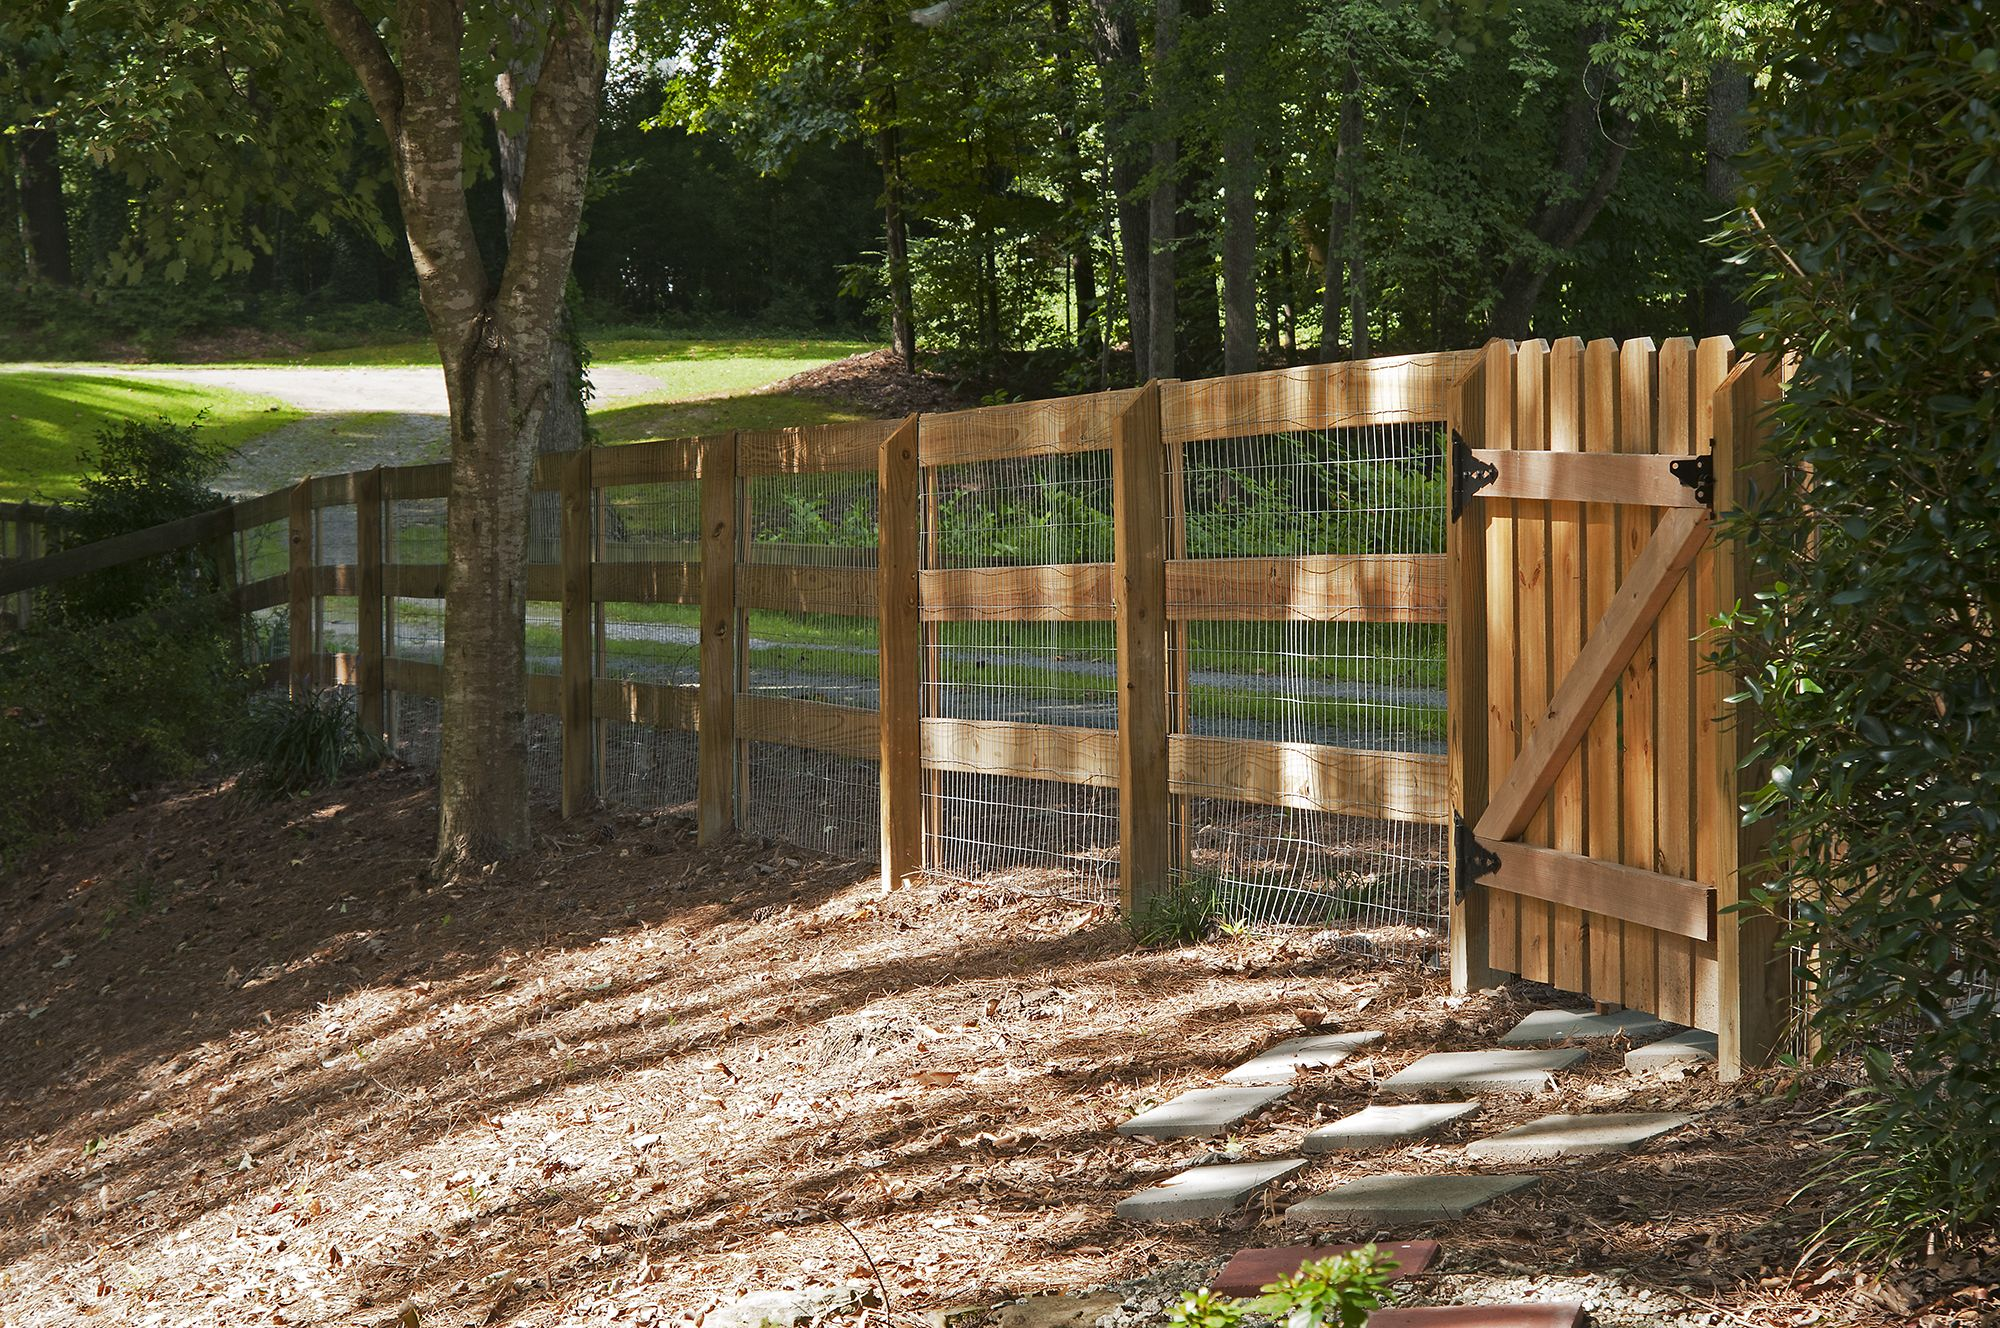 3 Rail Corral Fence With Wire And Picket Gate Designed